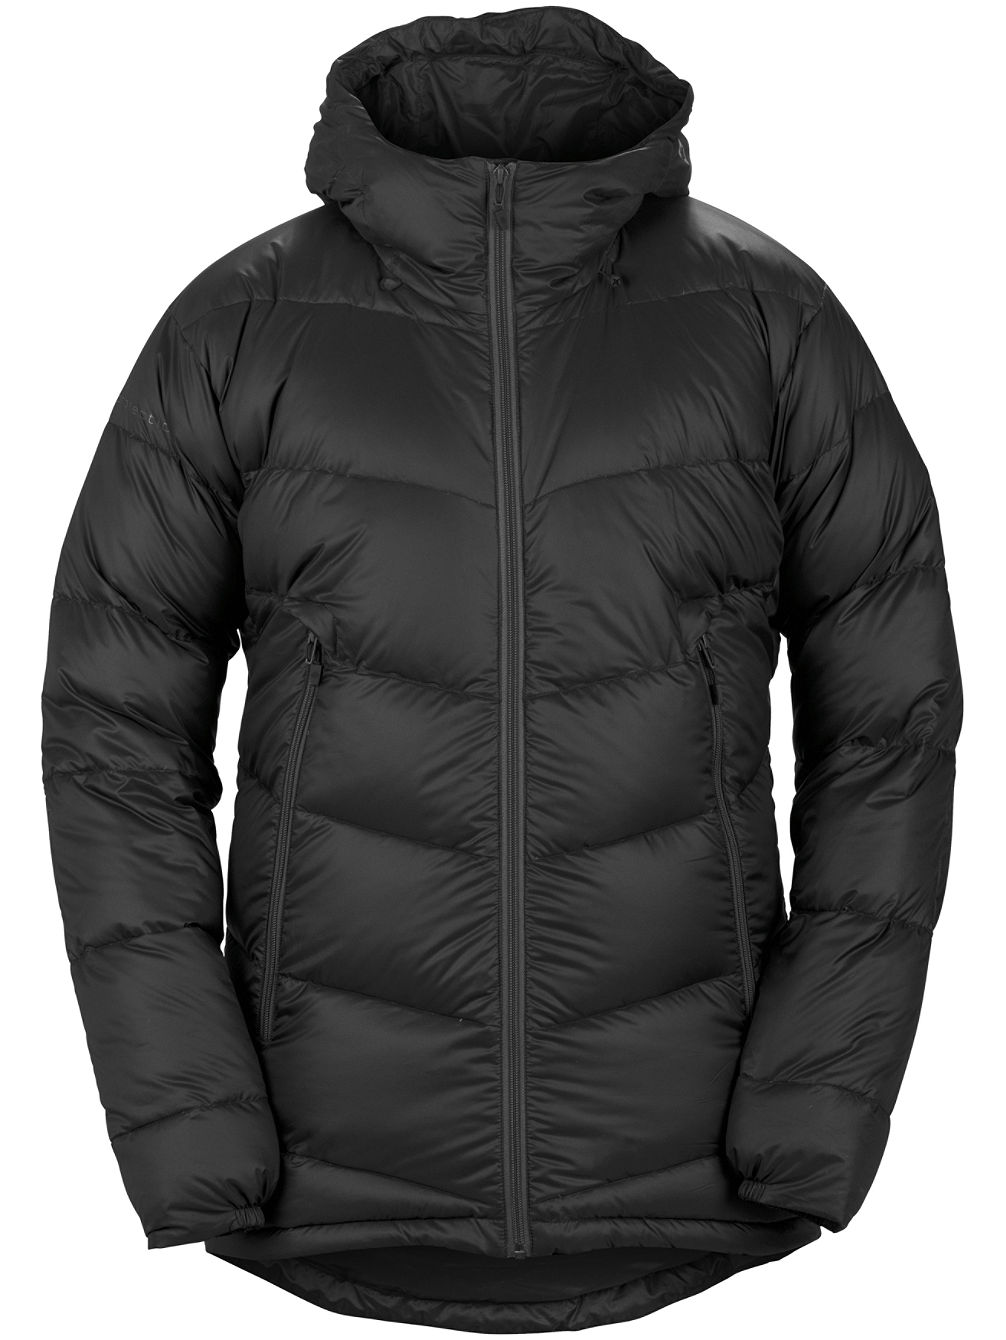 Buy Sweet Protection Salvation Down Jacket online at blue-tomato.com 133688ea40